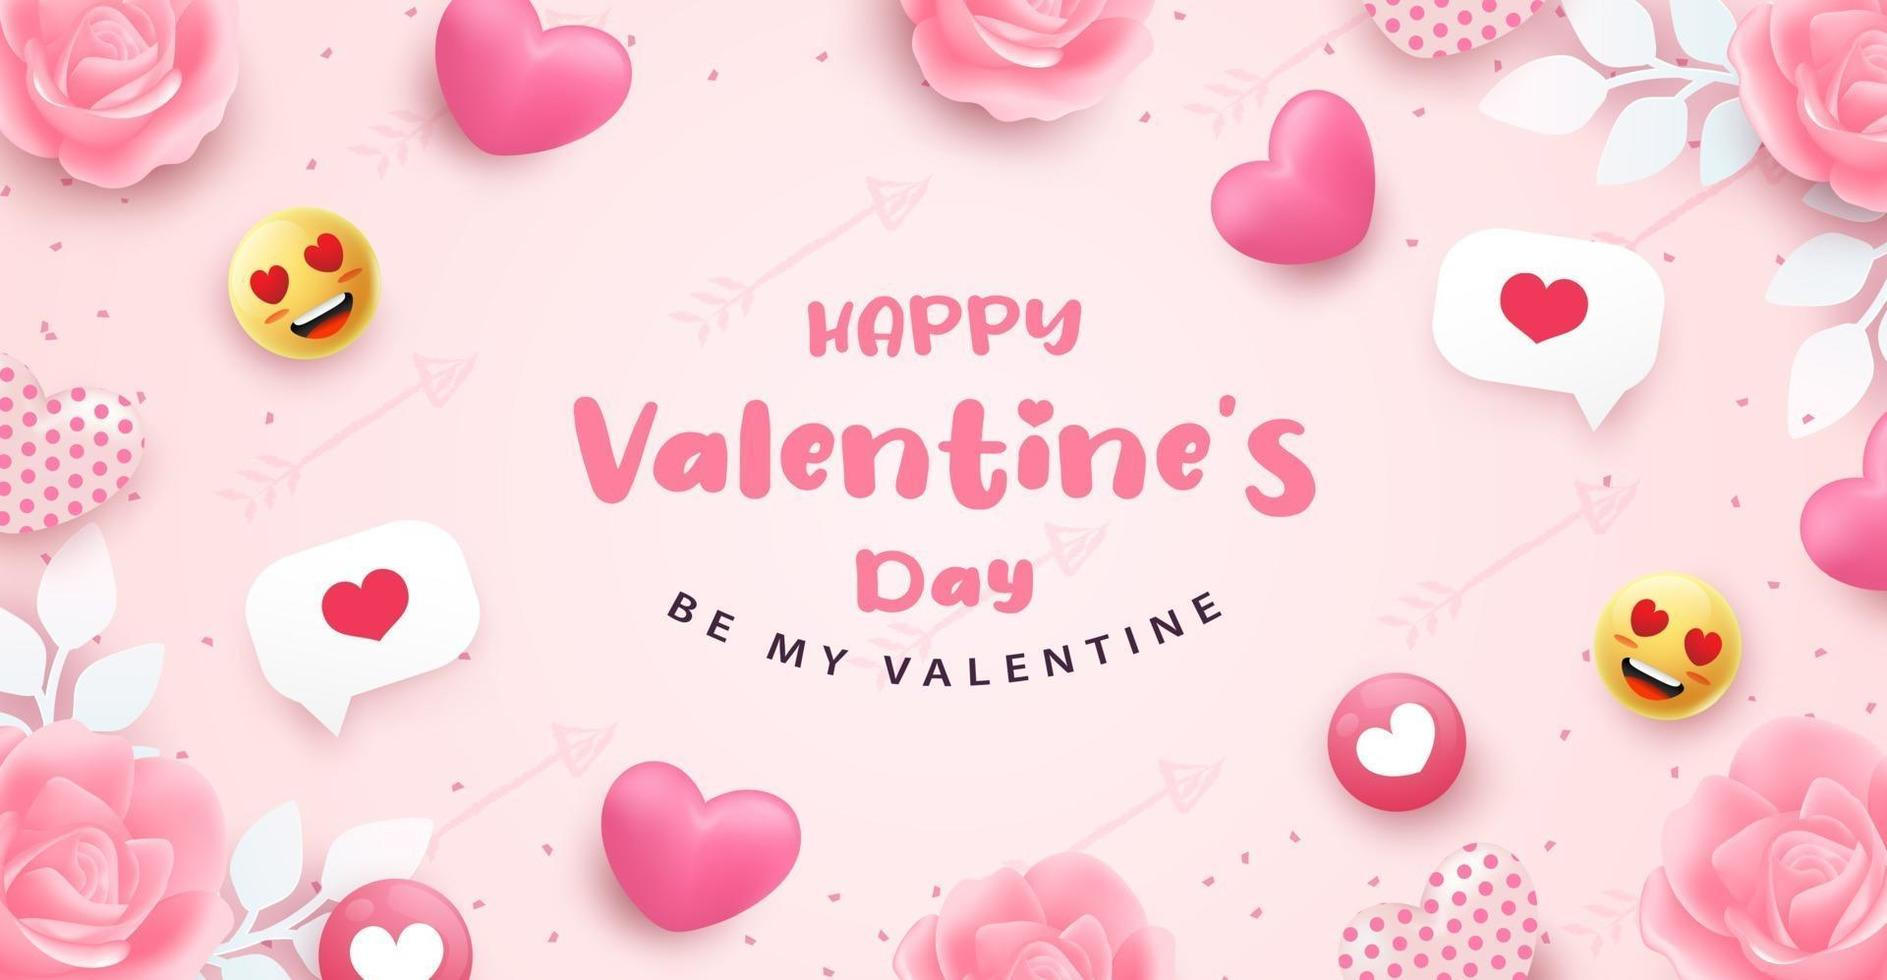 Happy Valentine's Day banner or background with 3D realistic pink heart vector